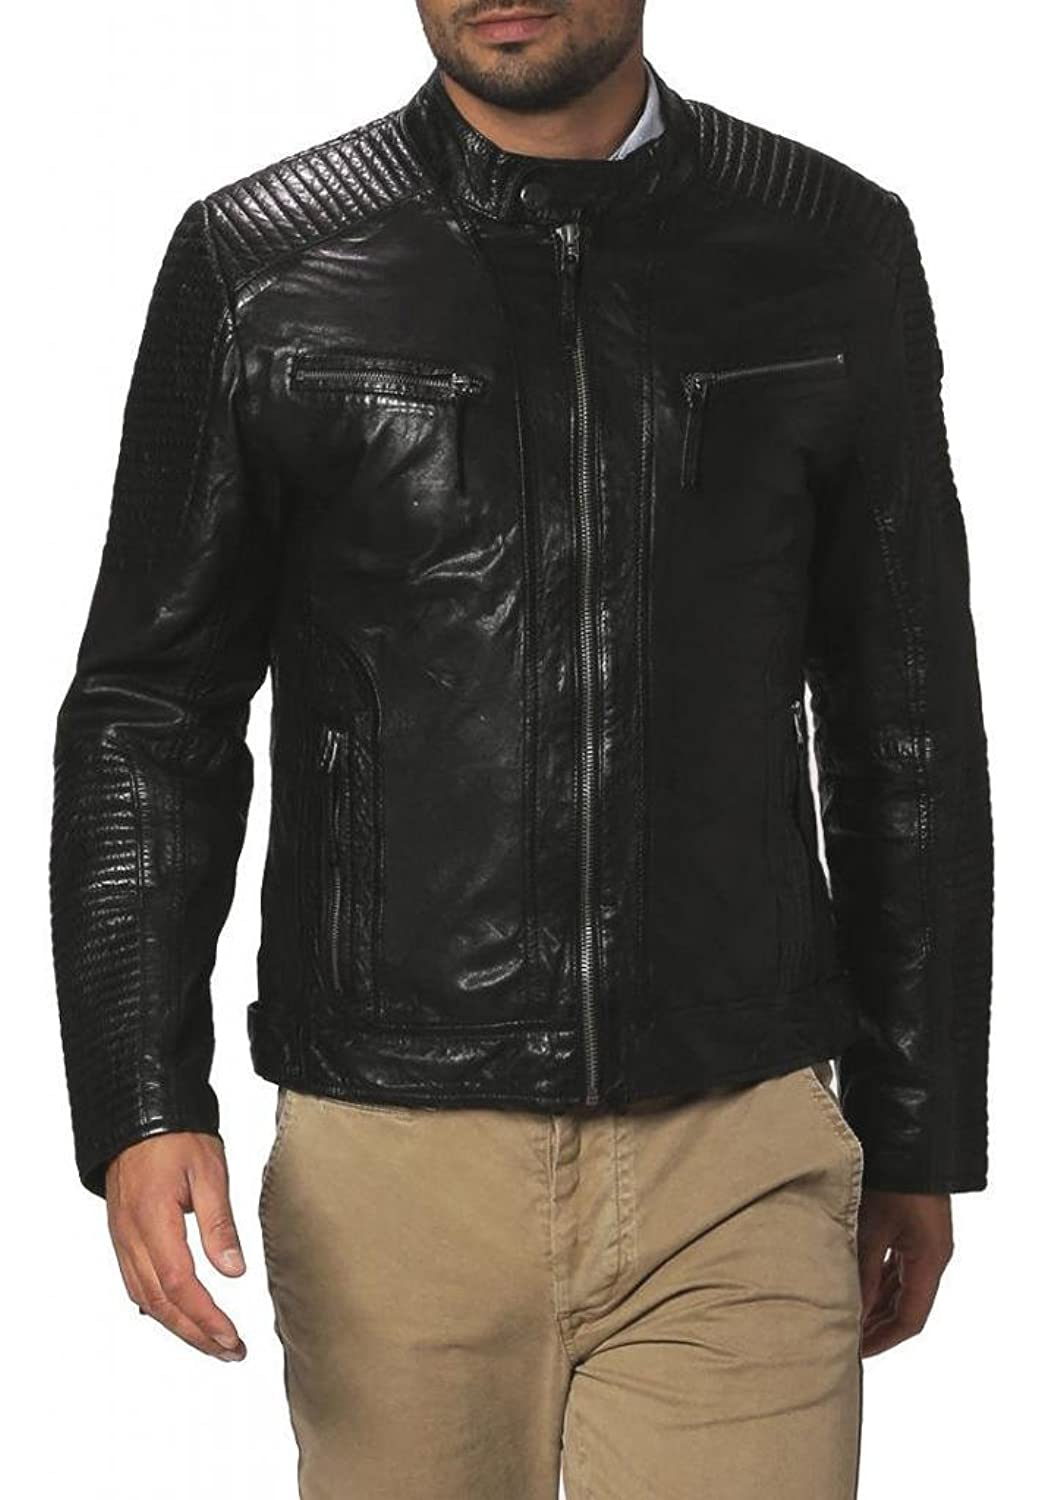 Men Leather Jacket Biker Motorcycle Coat Slim Fit Outwear Jackets AUK036